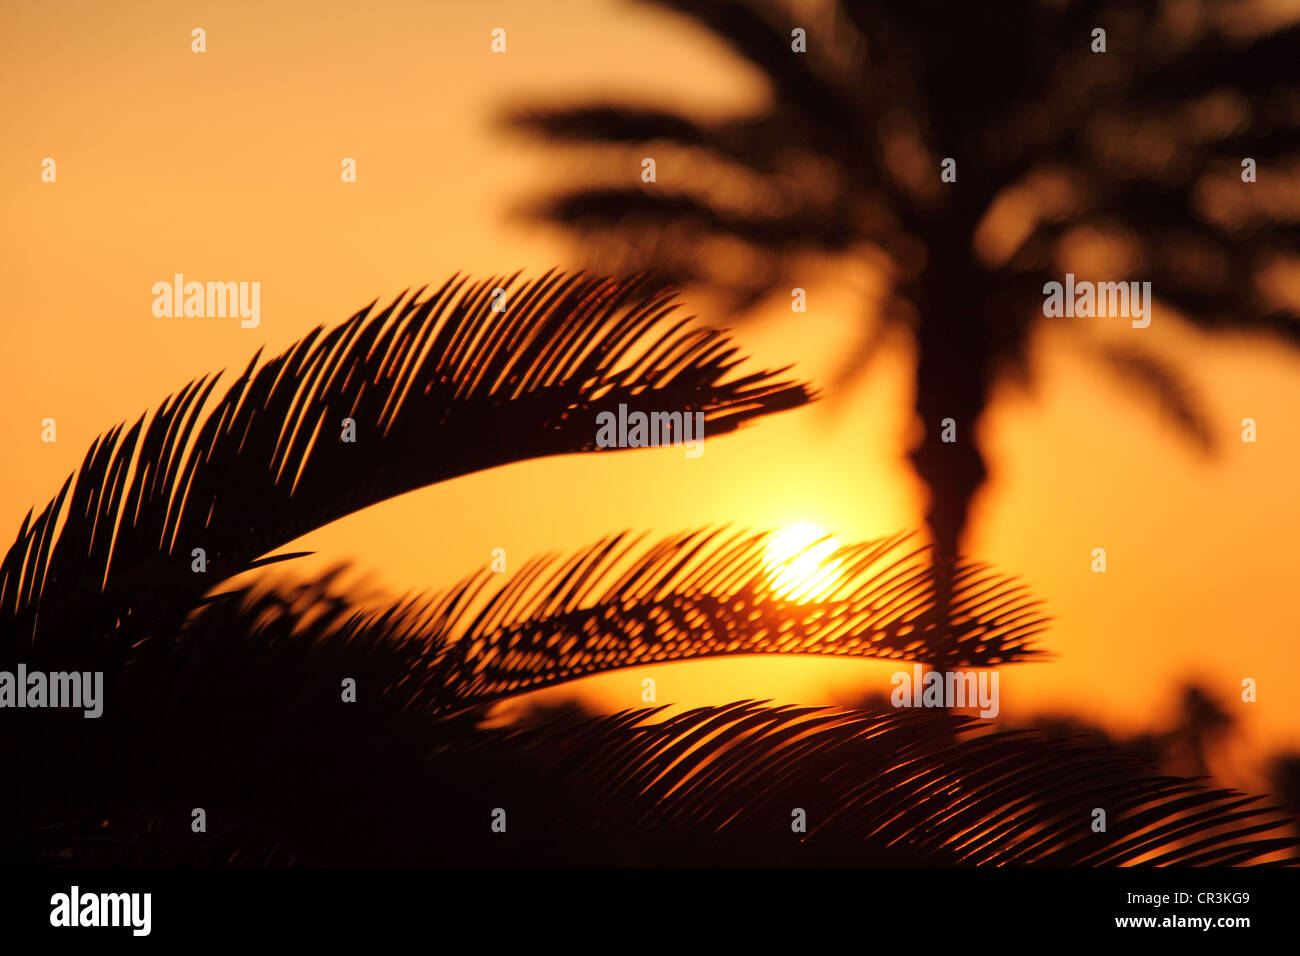 Palmiers au coucher du soleil Photo Stock